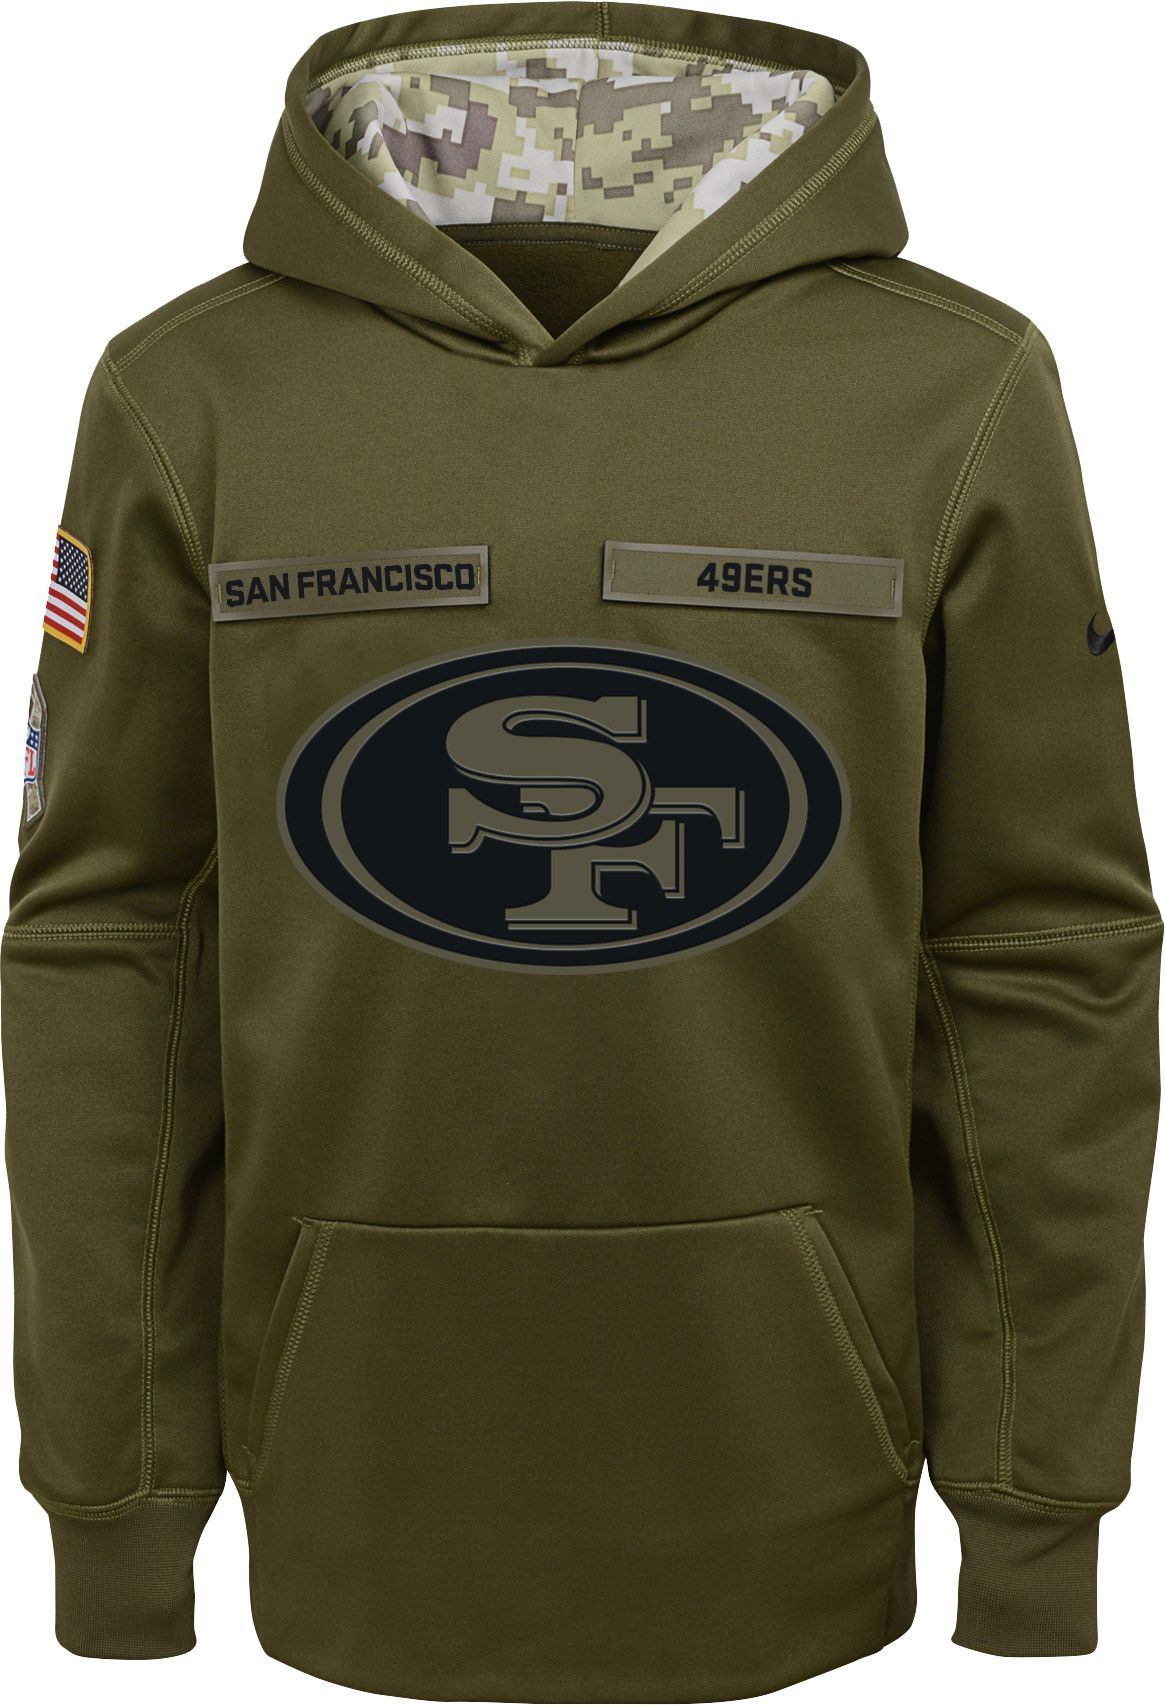 promo code ca6d0 25192 Nike Youth Salute to Service San Francisco Therma-FIT Olive ...